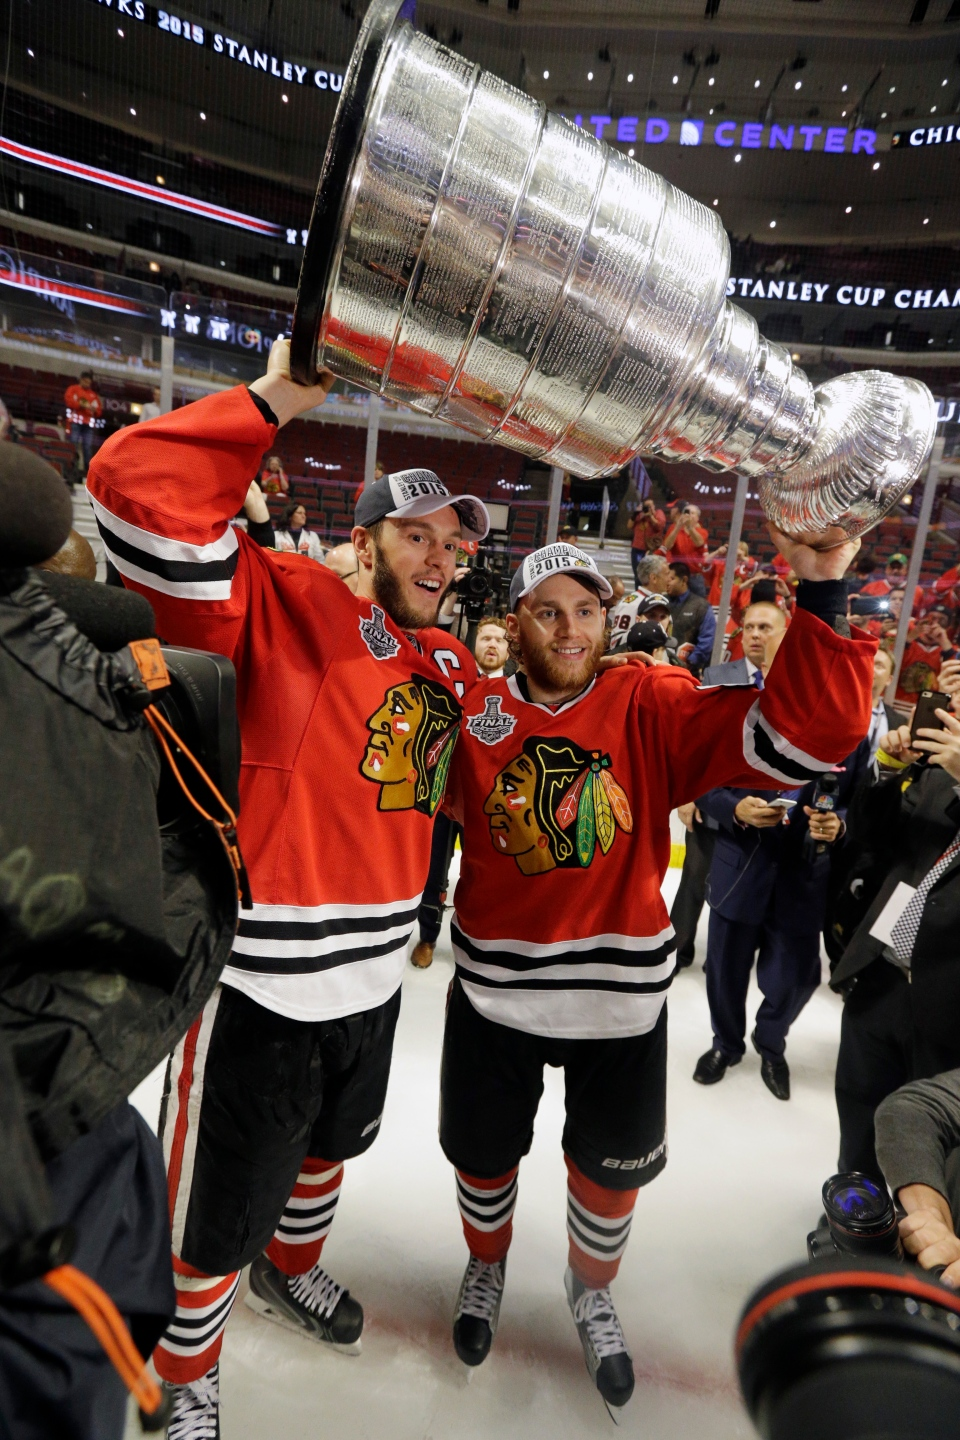 Blackhawks win the Stanley Cup photos details